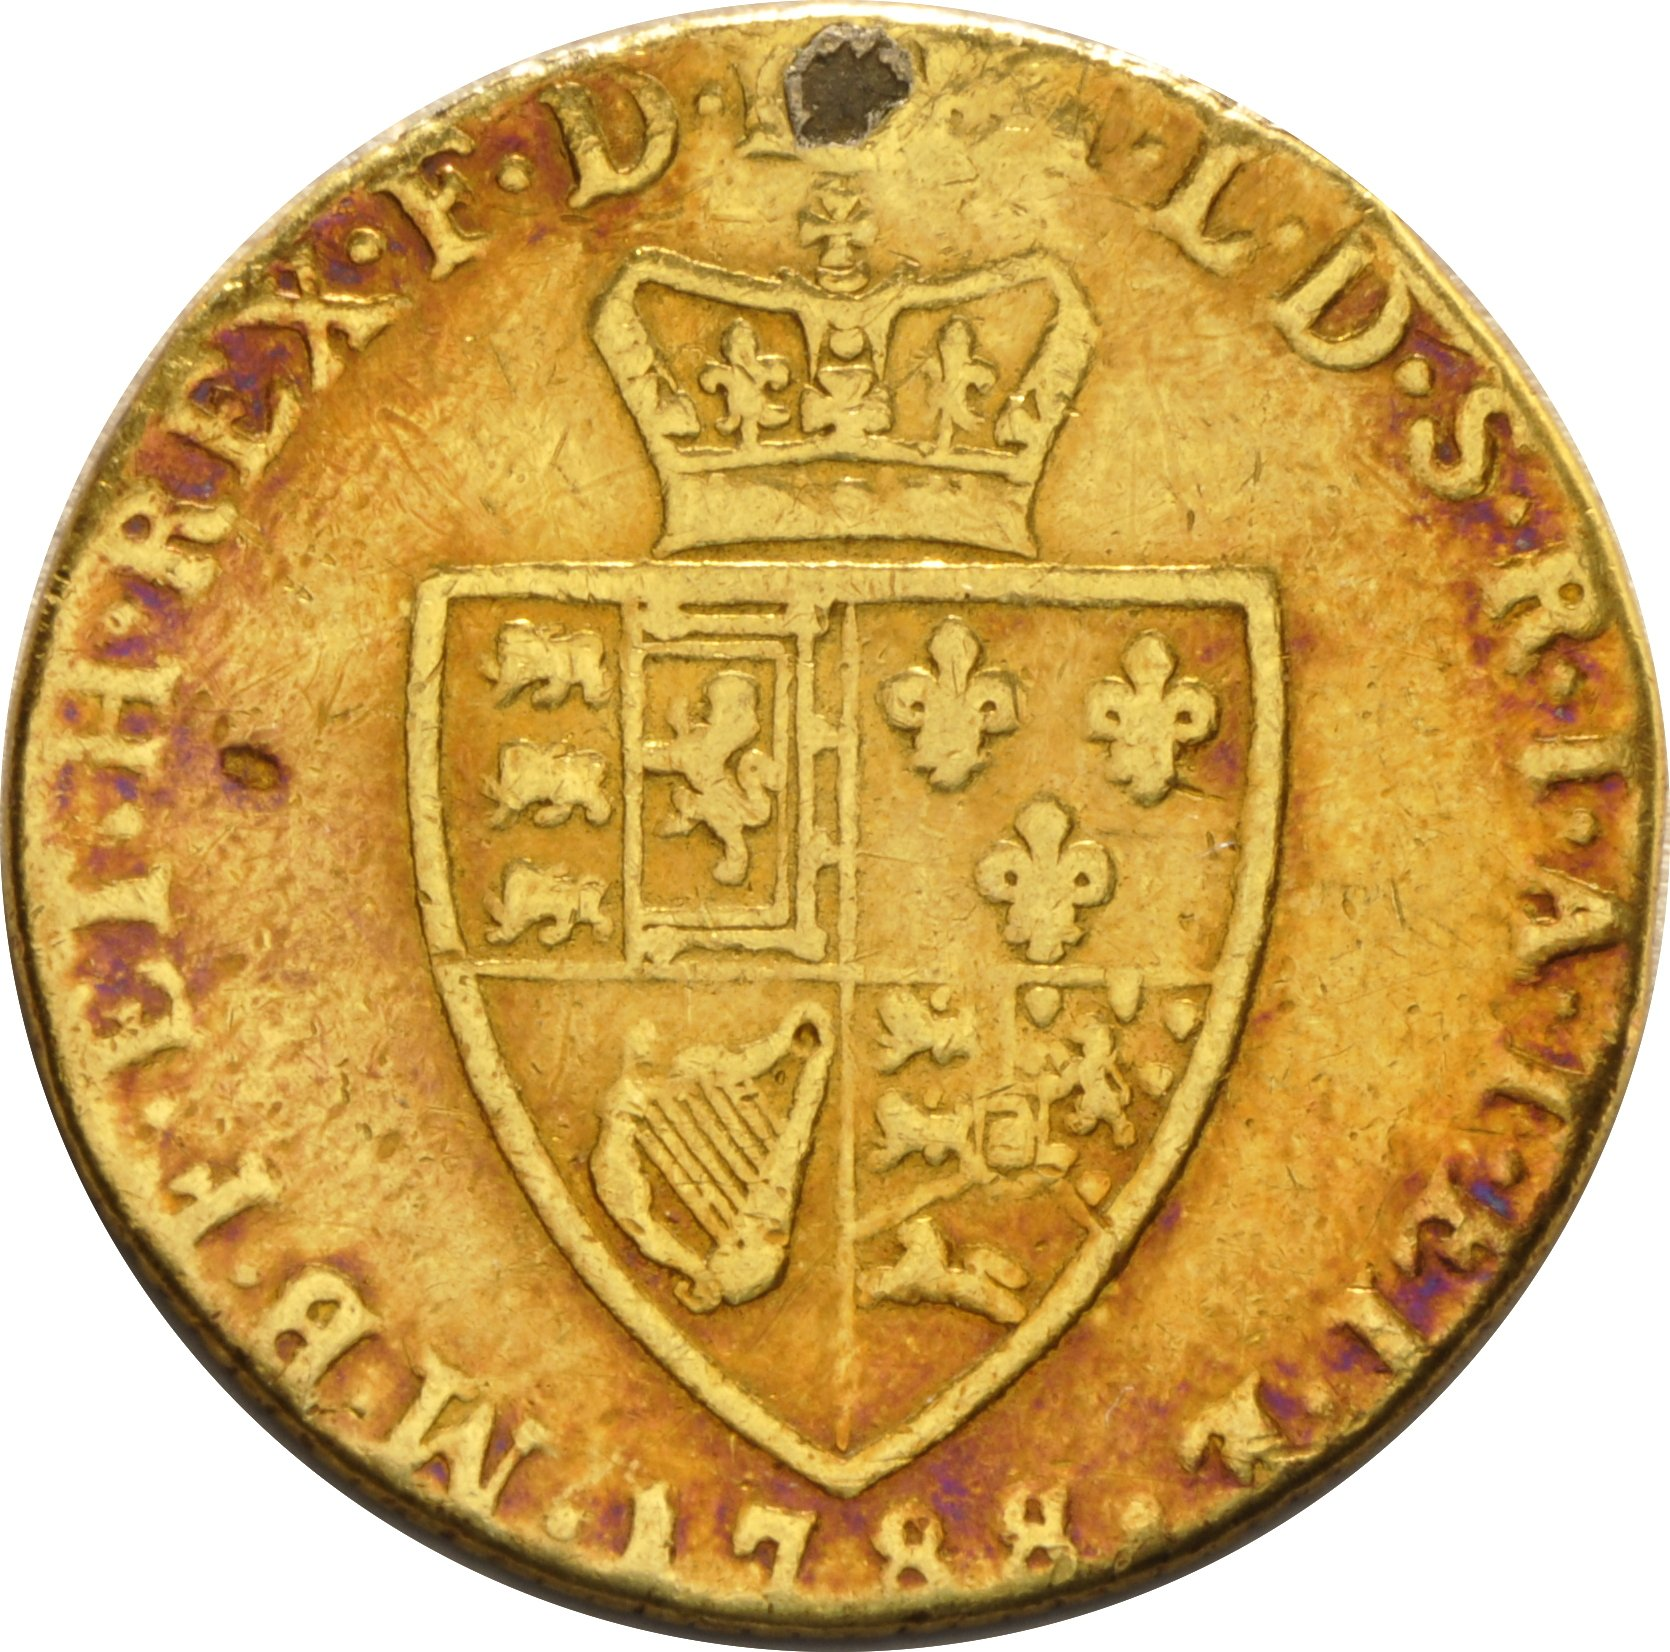 1788 George Iii Guinea Gold Coin 163 287